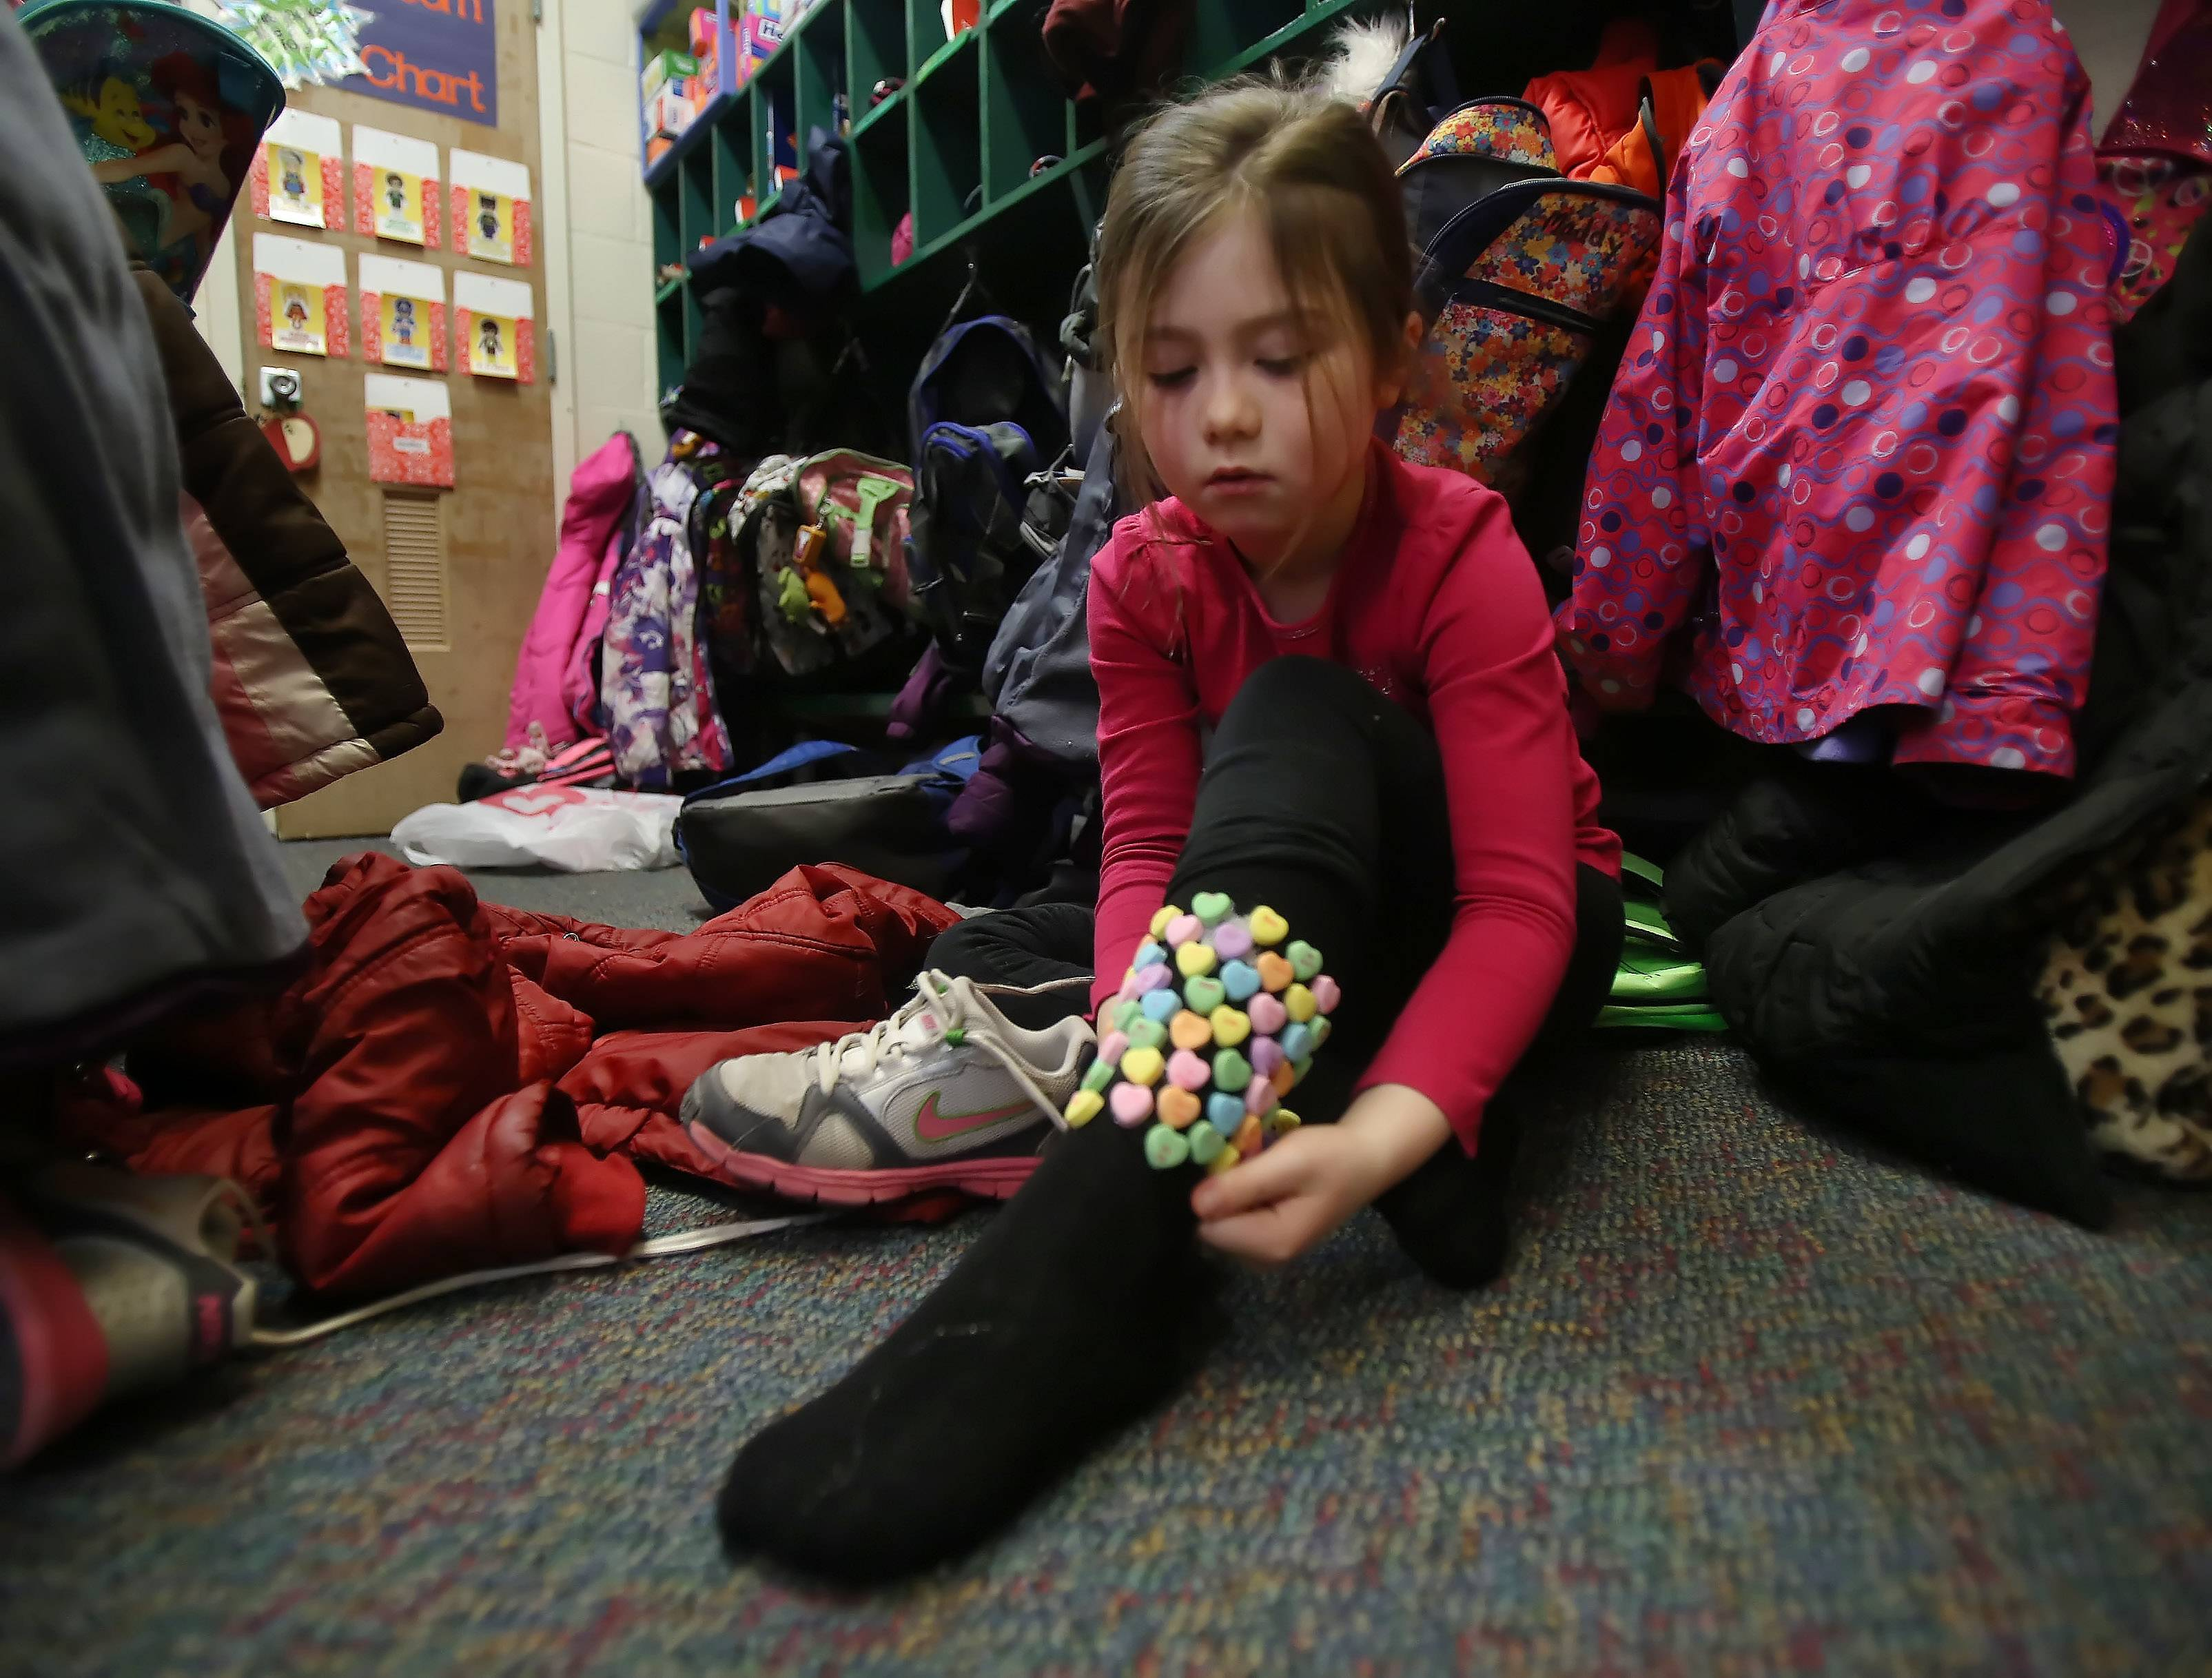 Copeland Manor School first-grader Sydney McGrath fixes her socks where she attached 100 candy hearts as students celebrate 100 days of school Tuesday in Libertyville. The students participated in various activities involving 100, including games, exercises, written and art projects.